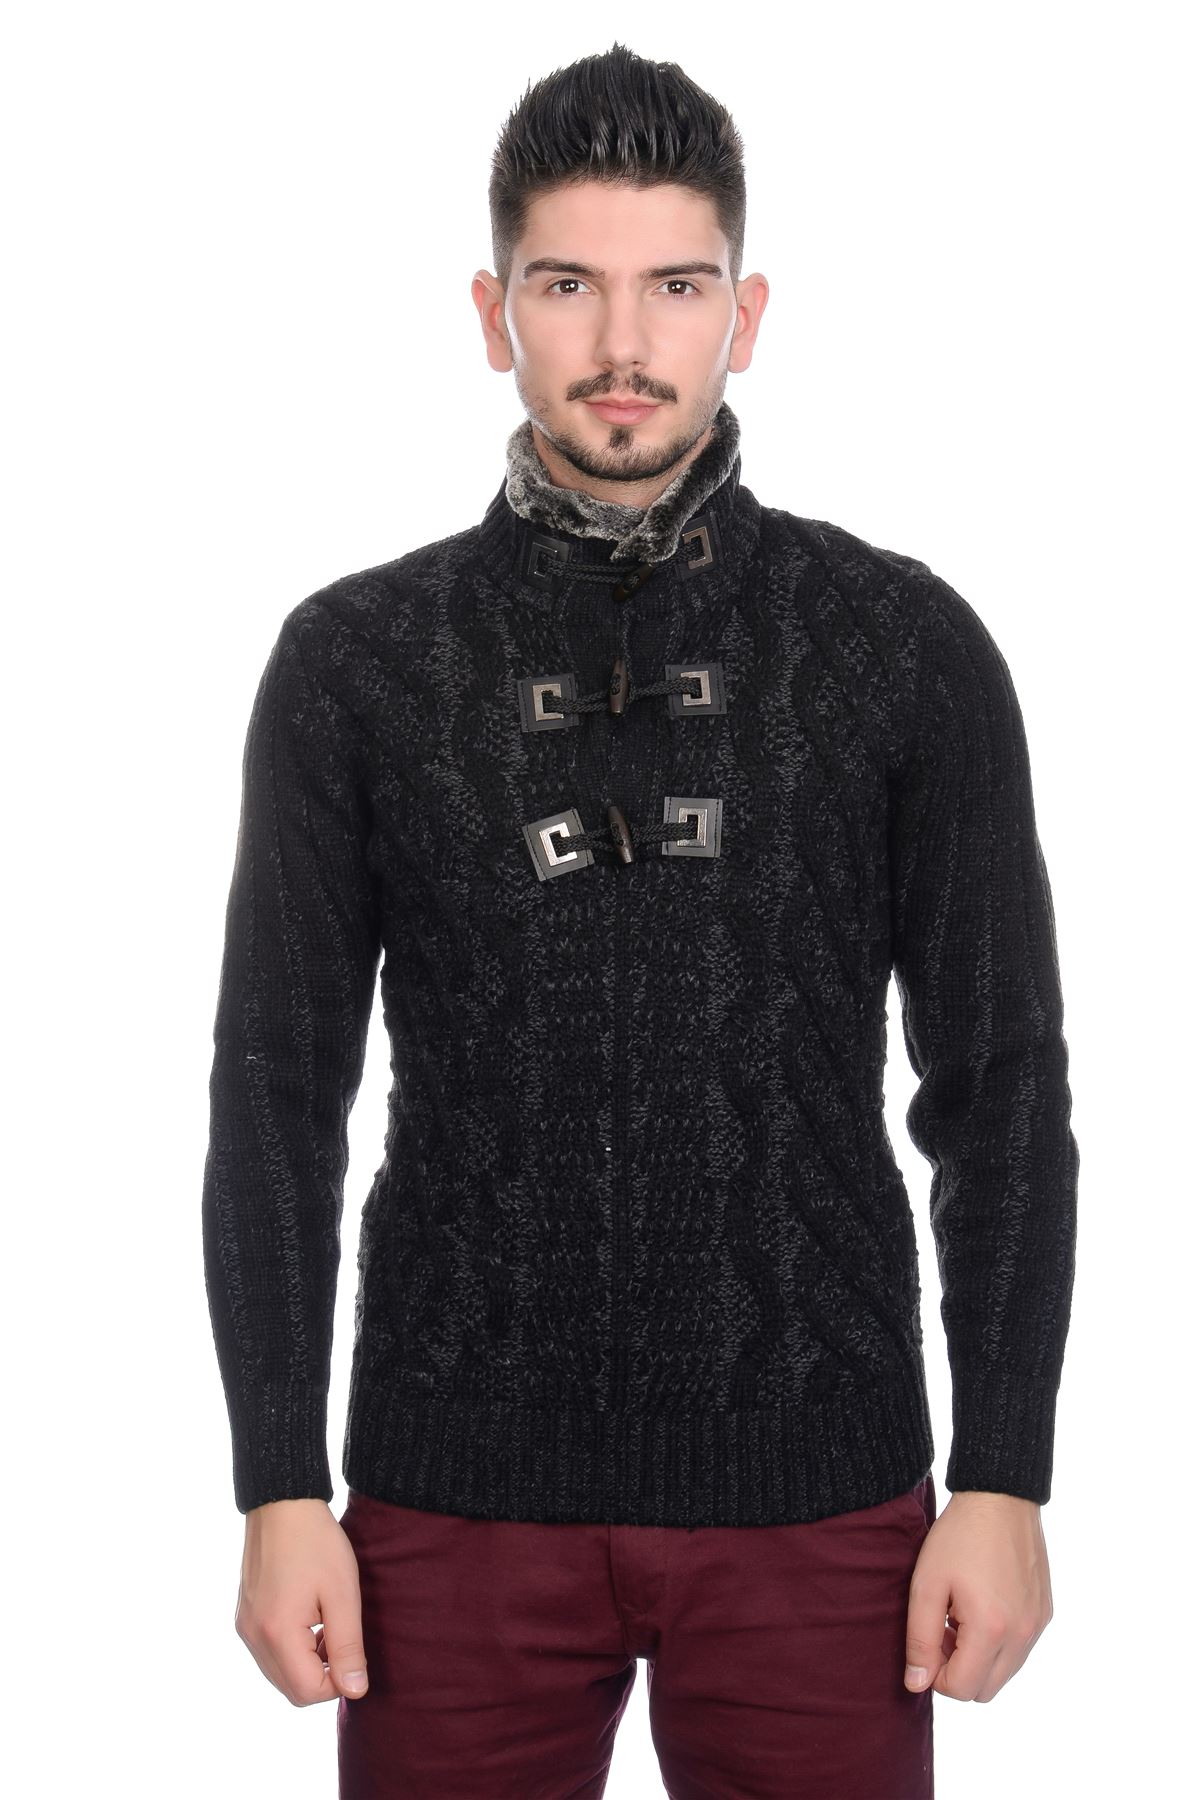 Knitting Cardigan Collar : Bnwt mens designer cable knit jumper cardigan sweater with